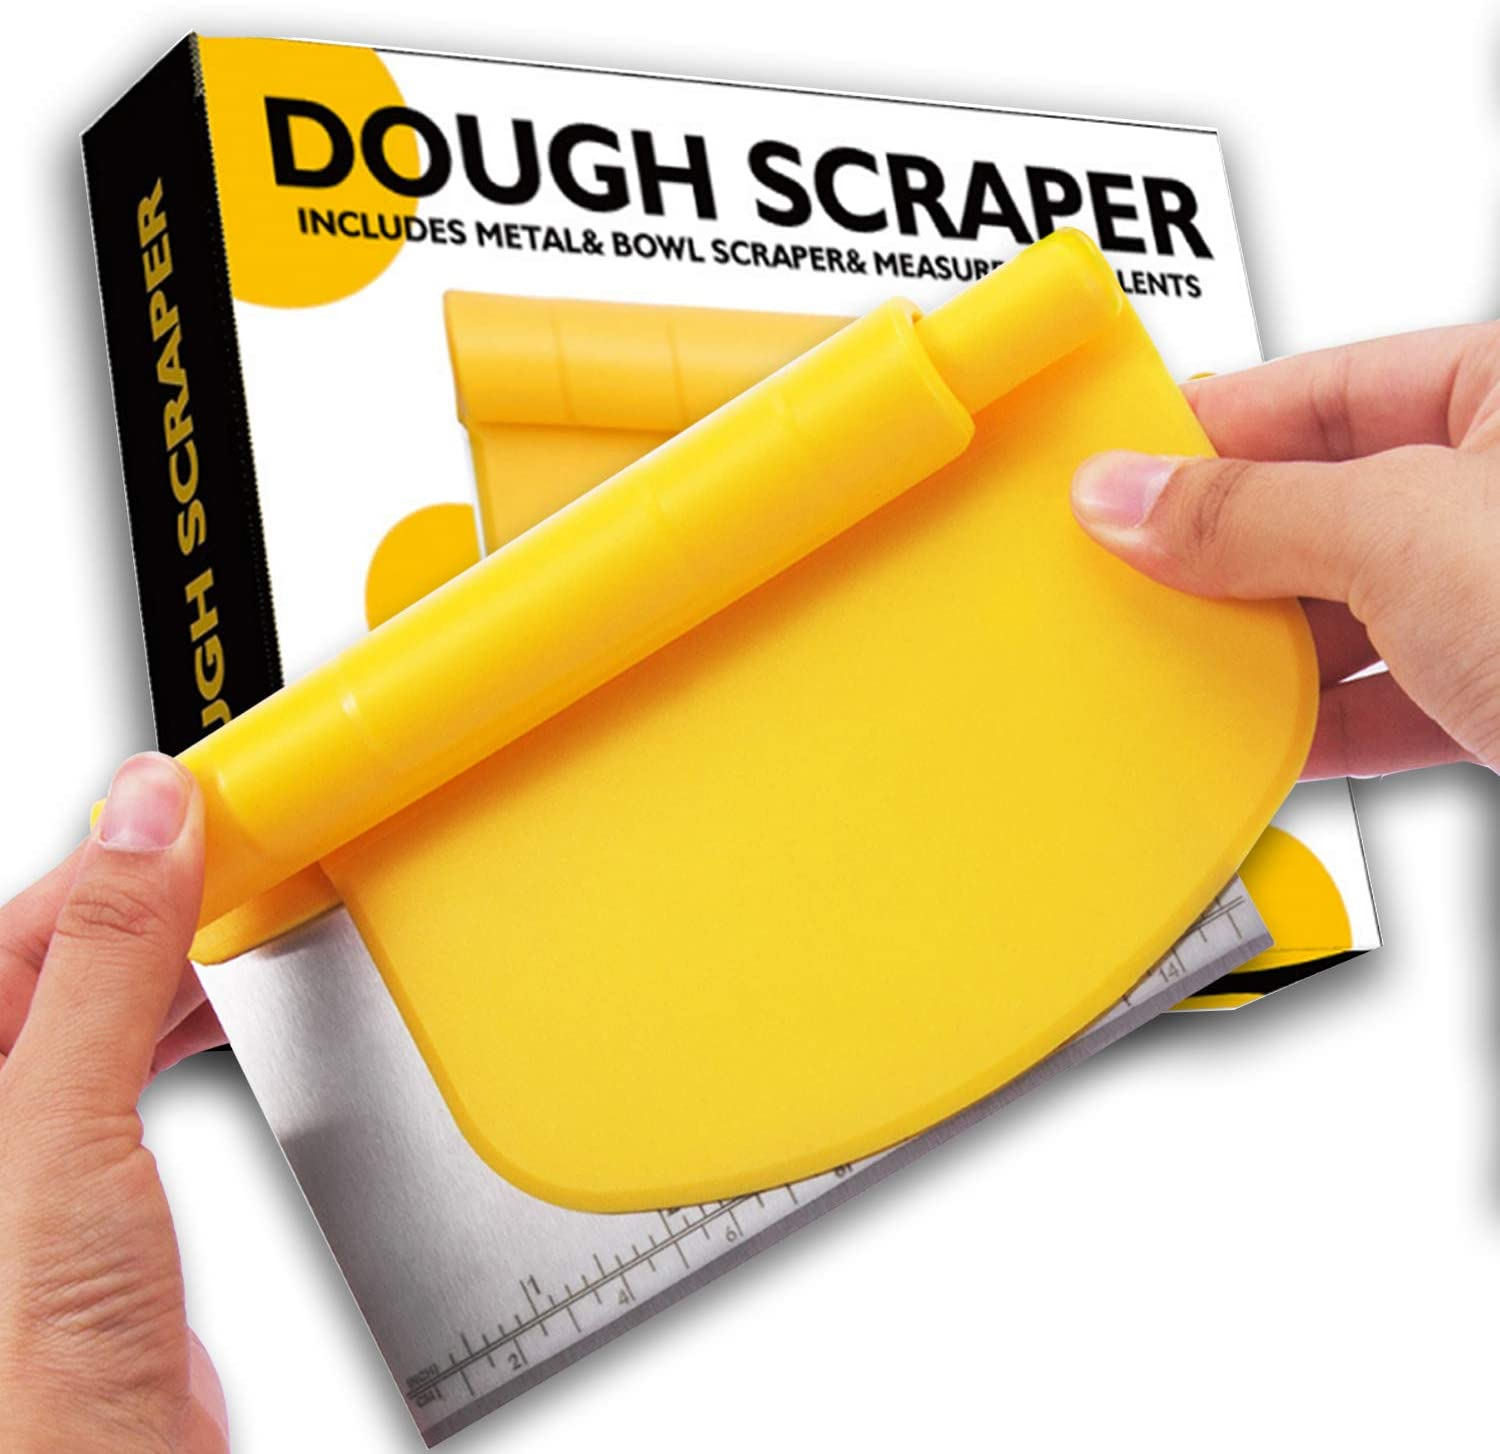 Pro Dough Pastry Scraper/Chopper And Flexible Plastic Bowl Scraper set, Multi-function Cake, Baking Tool With Measuring Function, 2 in 1 Kitchen Scraper, Used For Making Pizza, Bread And Pastry.